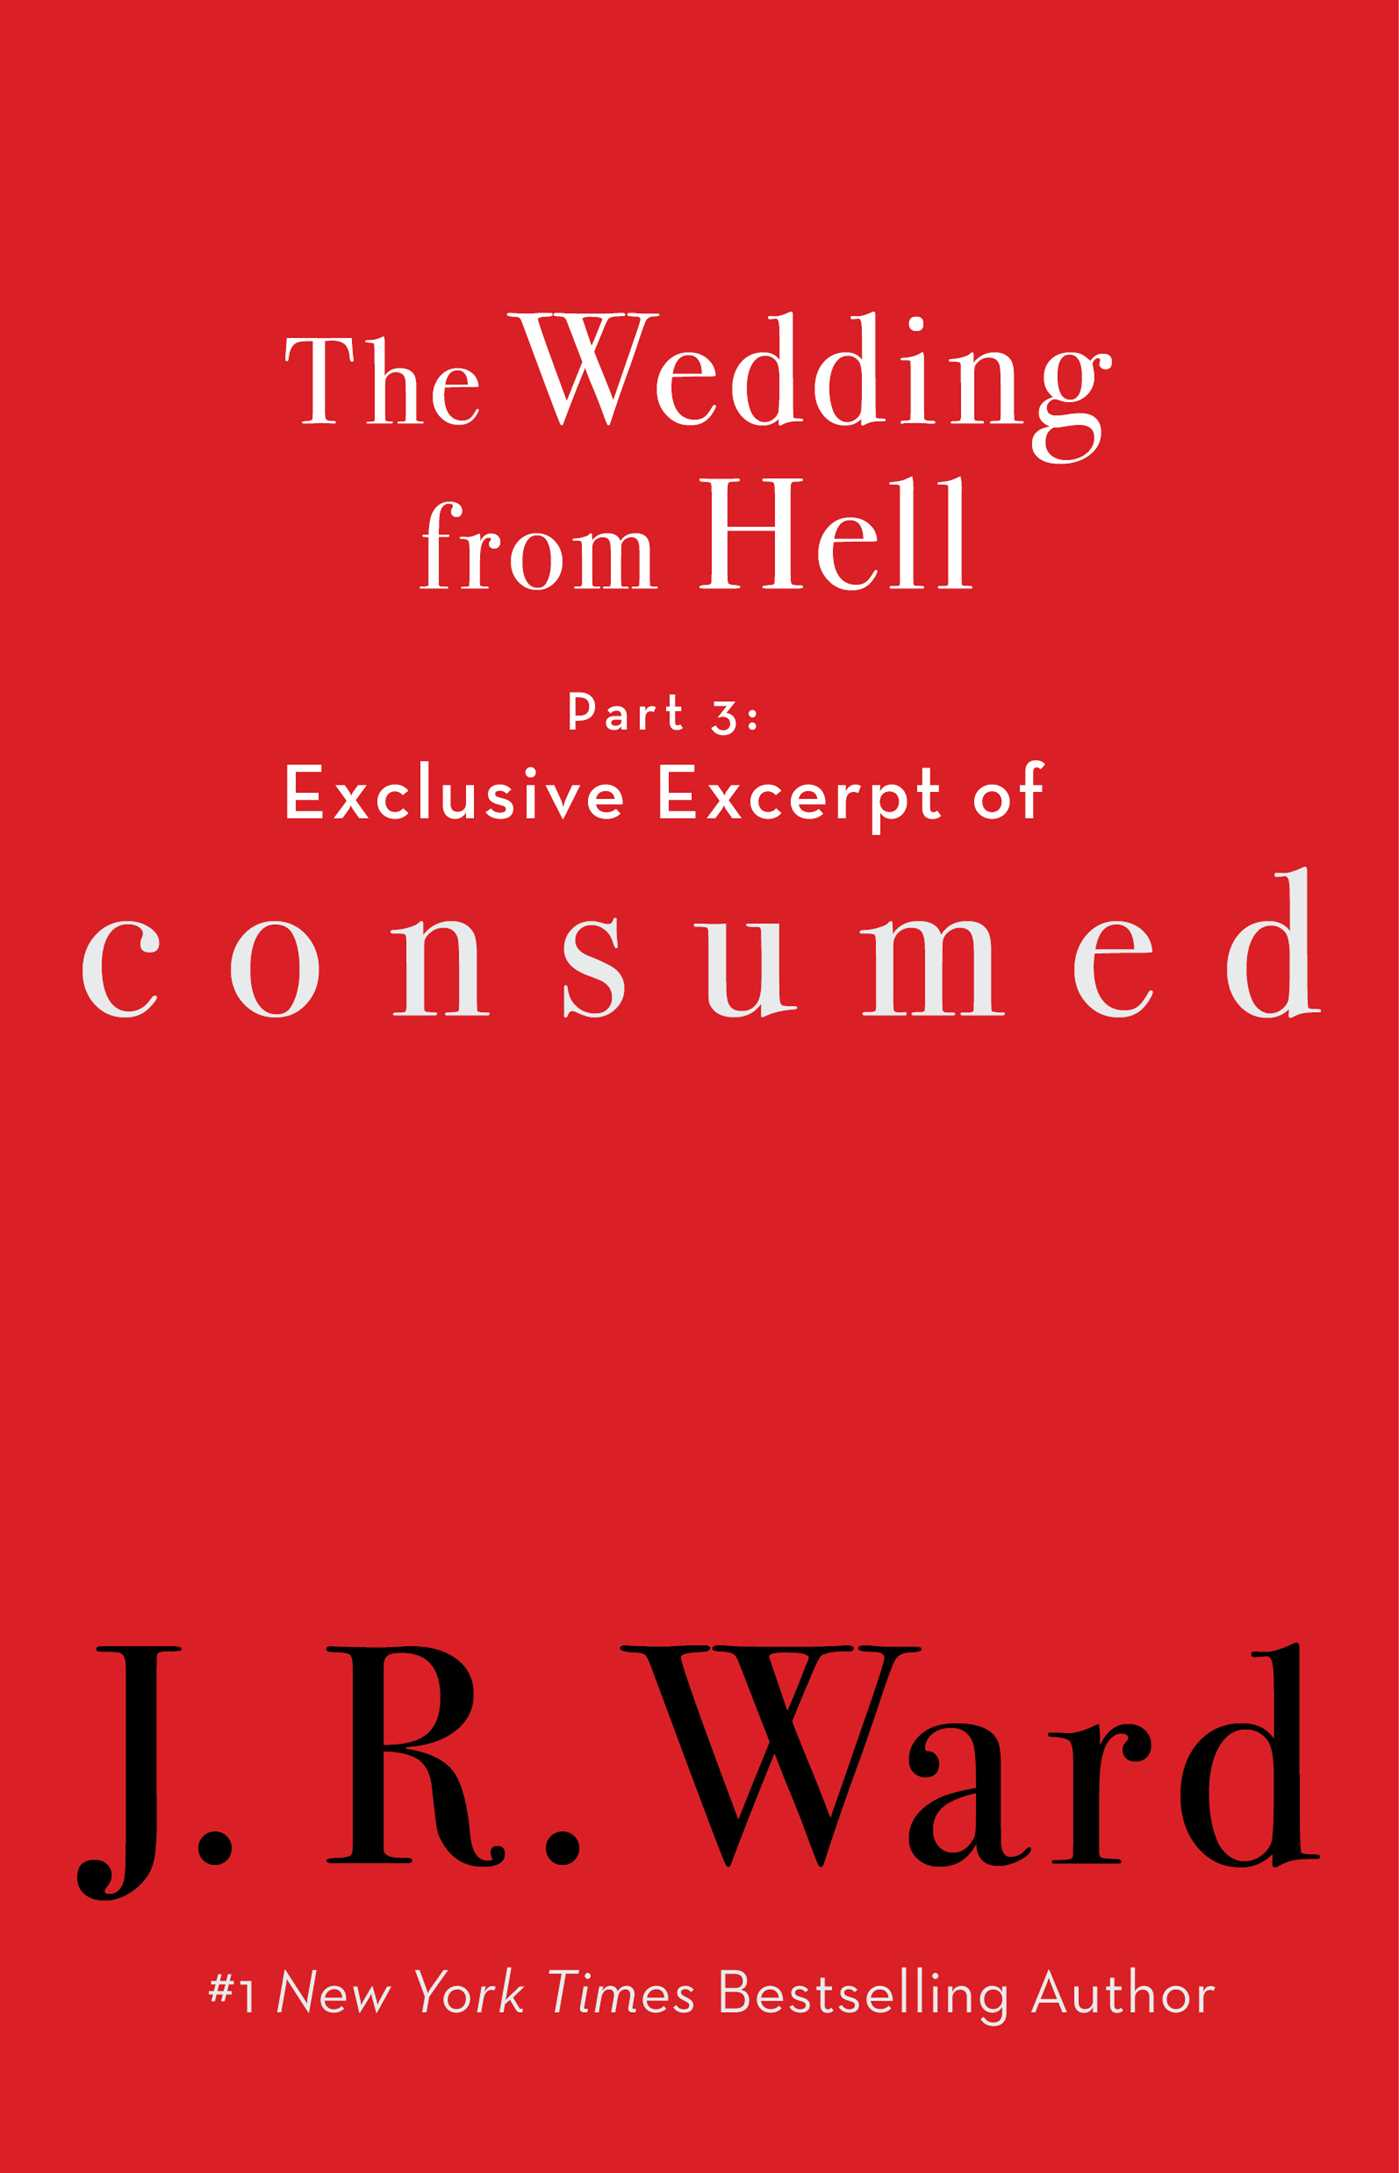 The wedding from hell part 3 exclusive excerpt of consumed 9781982105389 hr